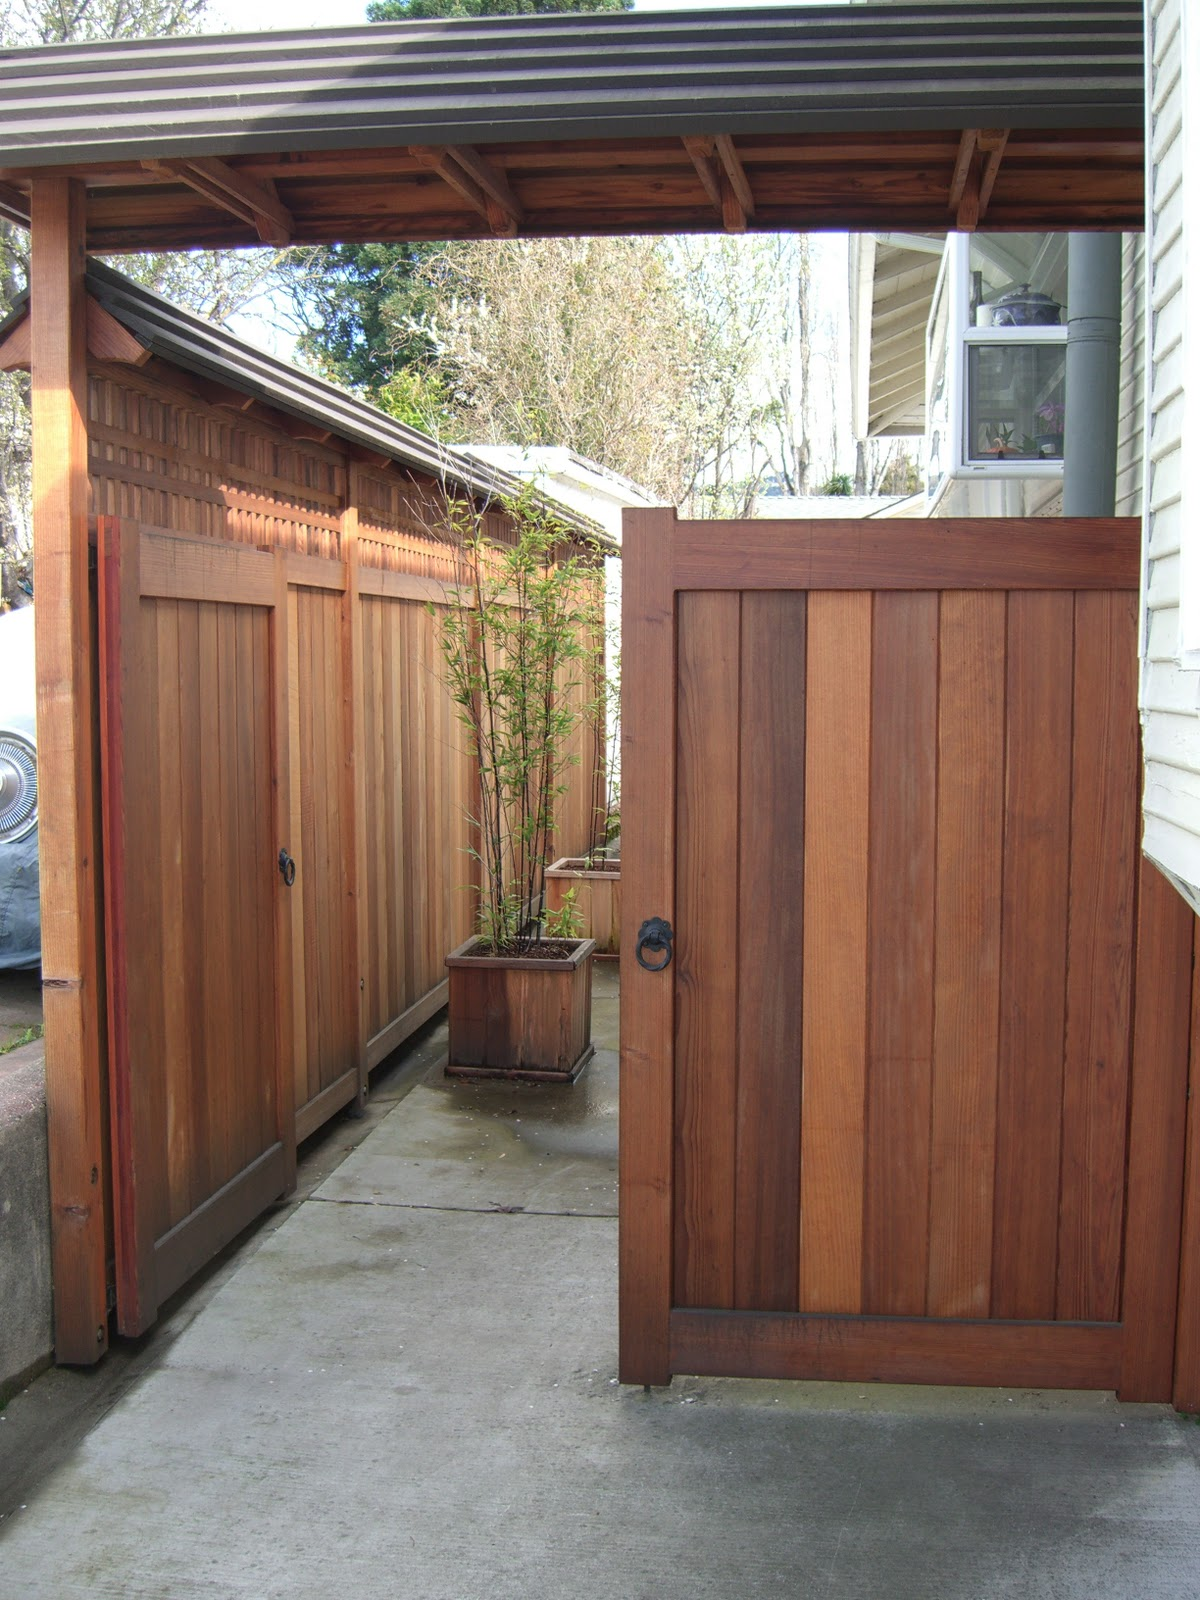 MacGregor Construction Japanese Style Driveway Gates and Fence